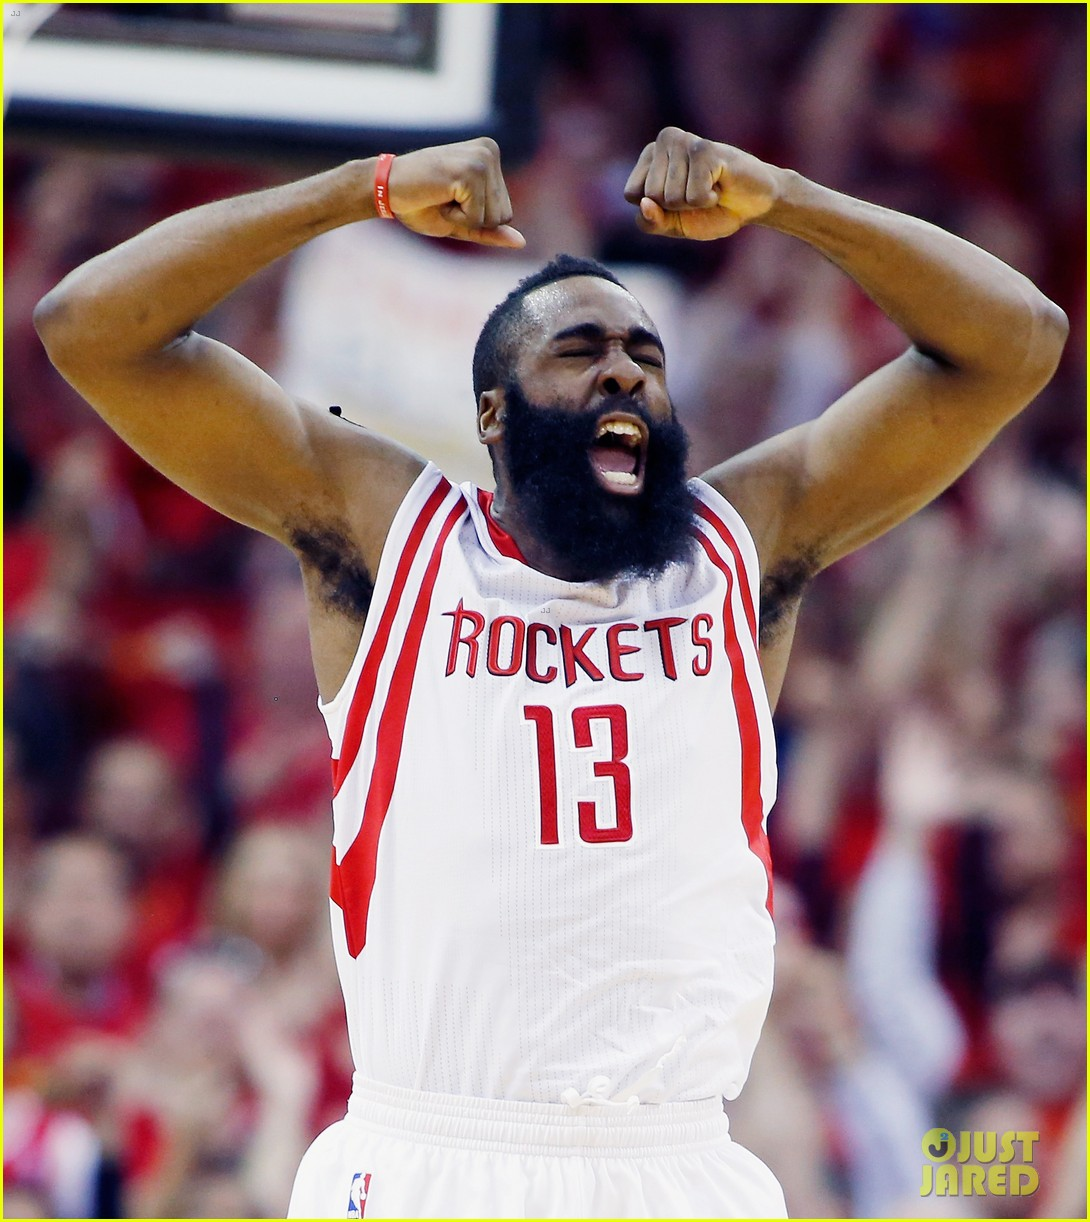 James Harden Yearly Stats: Who Is James Harden? Meet Khloe Kardashian's Rumored New